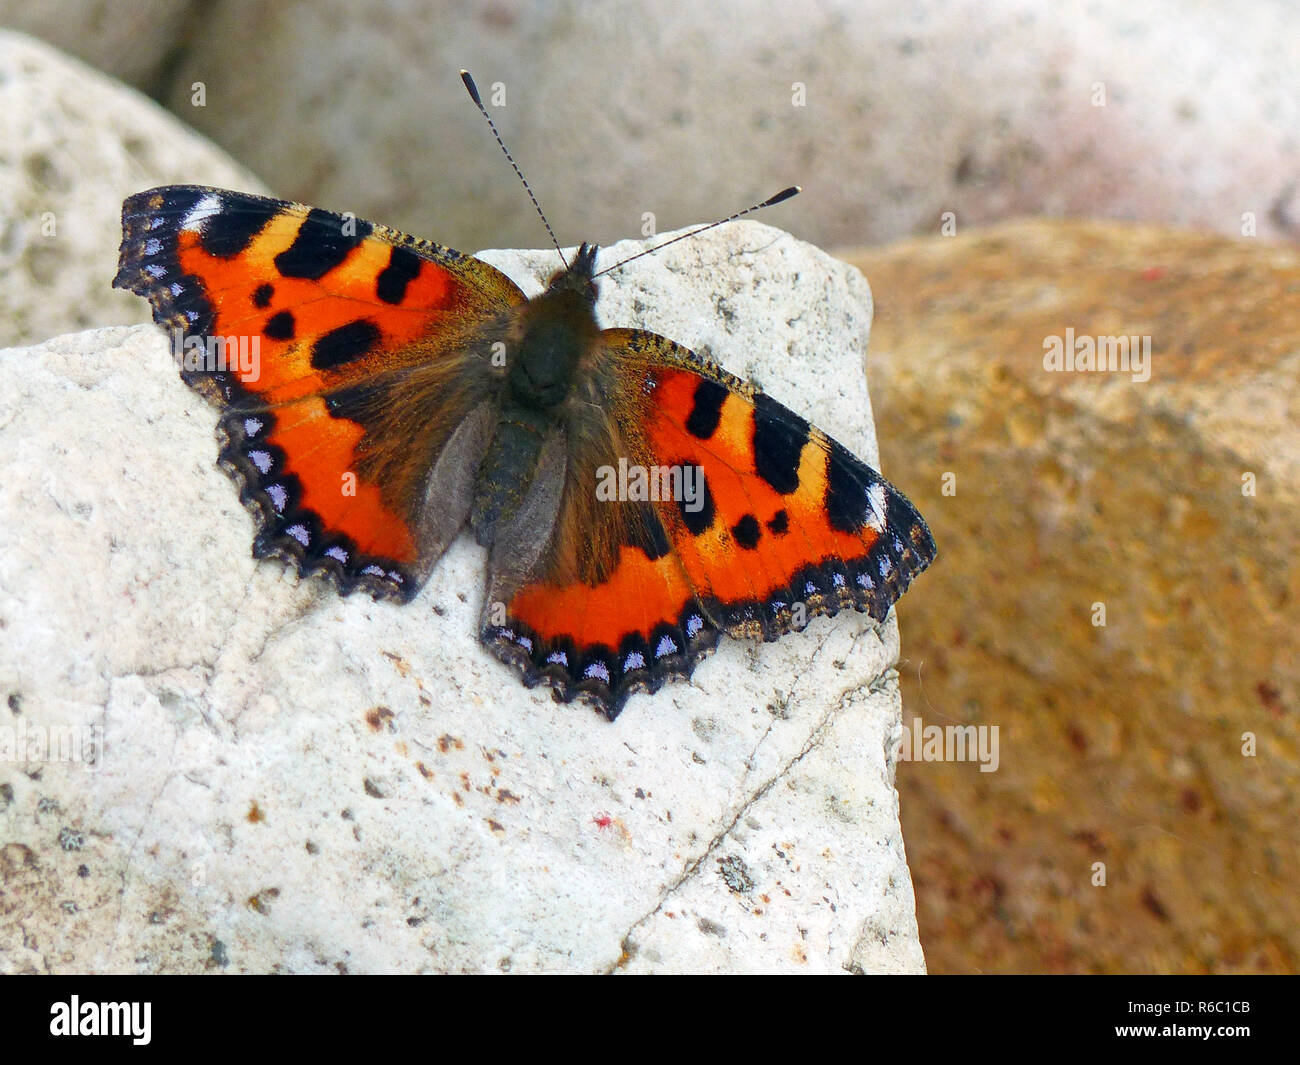 Small Tortoiseshell Butterfly Sitting On A Stone - Stock Image